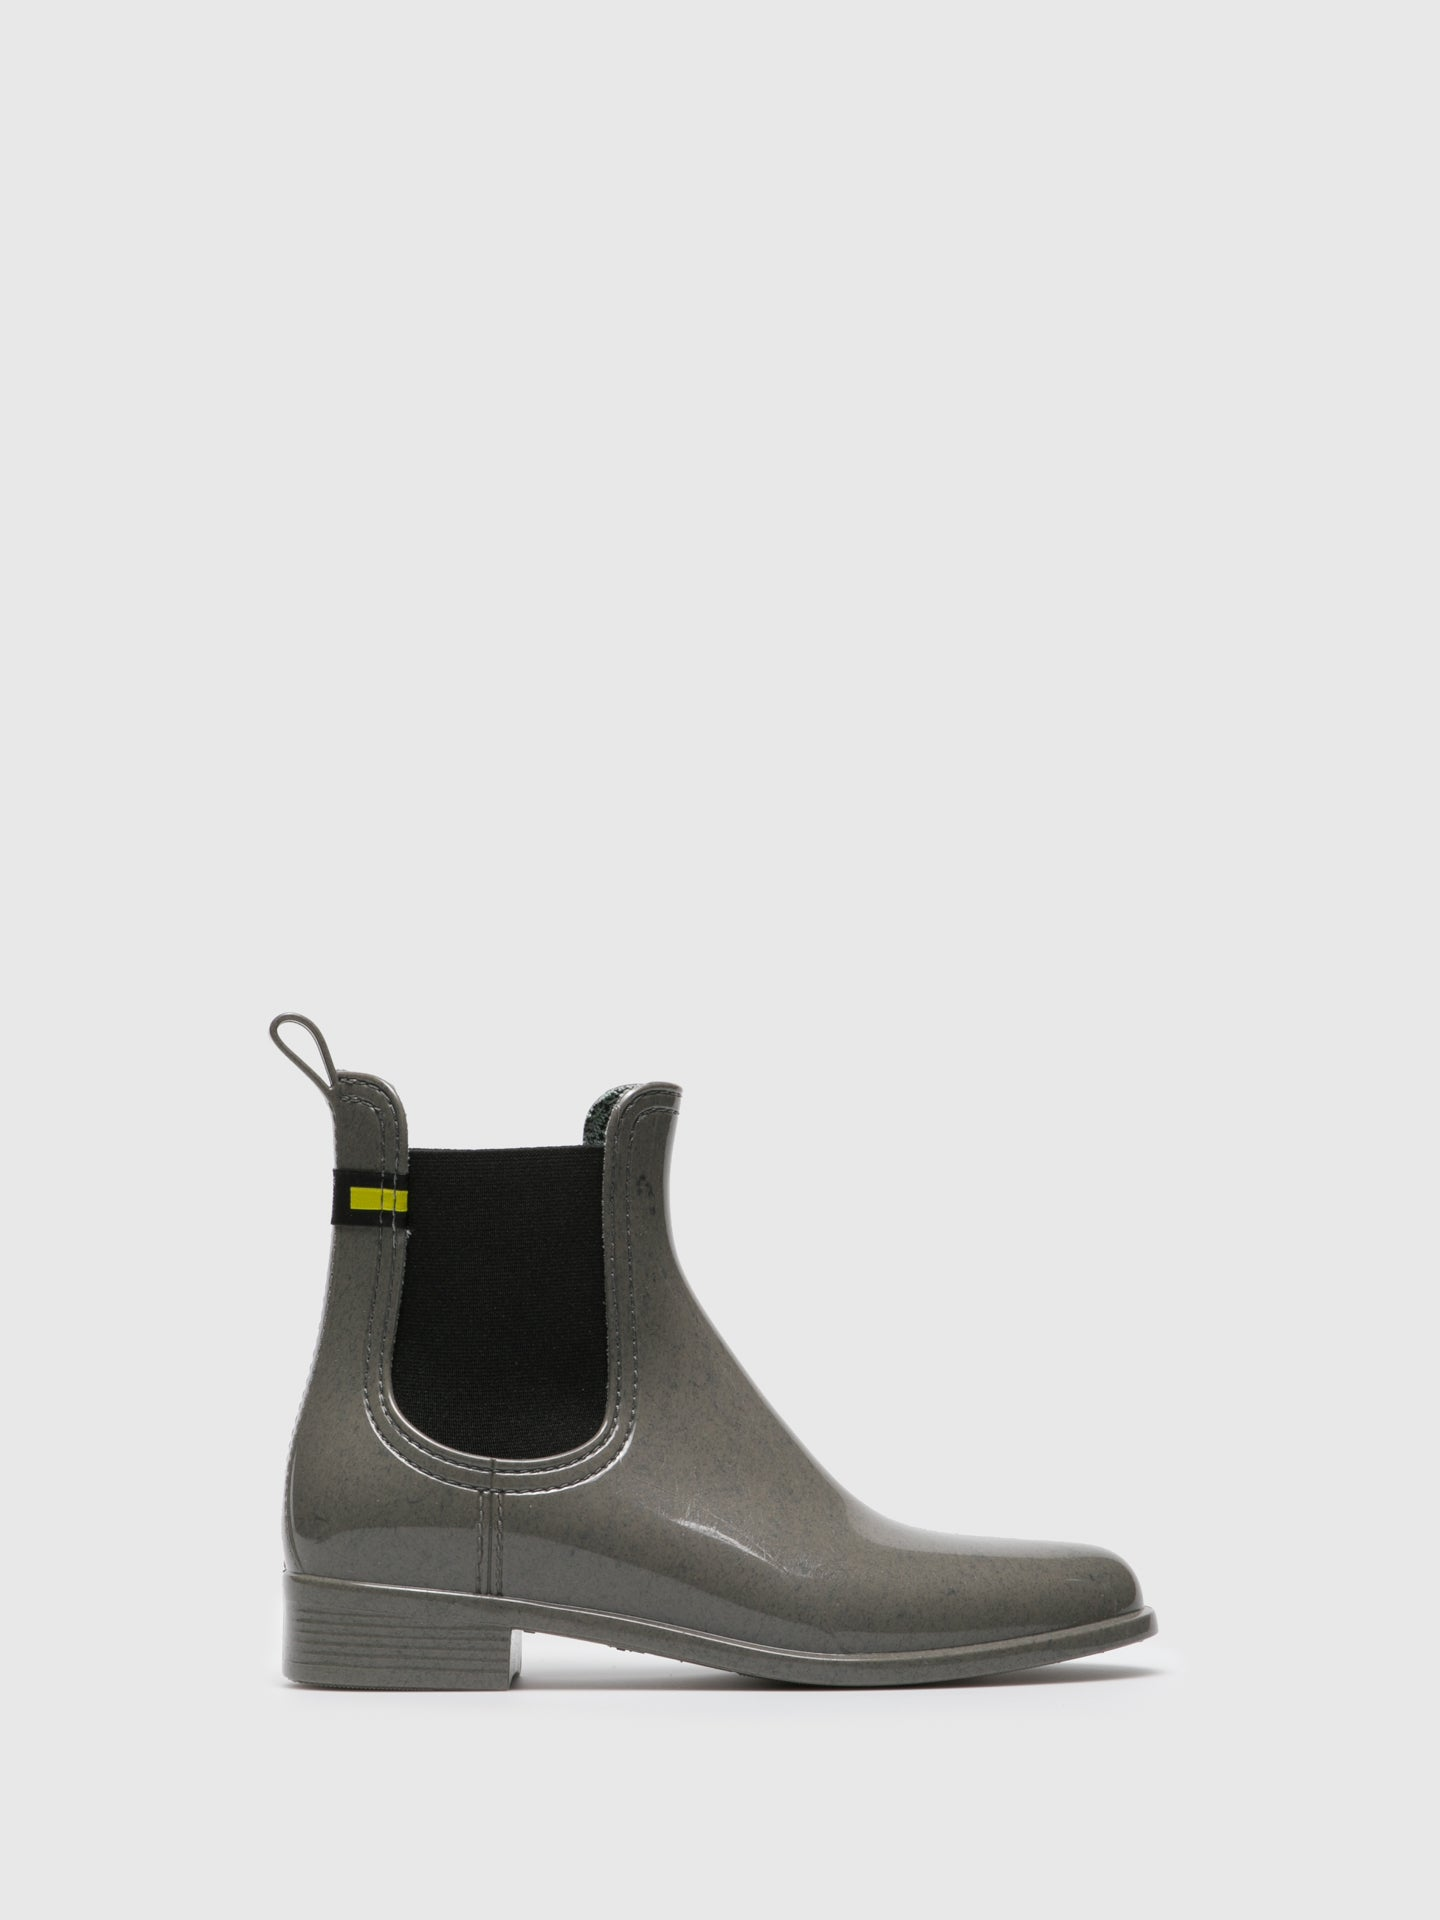 Lemon Jelly Stiefeletten im Chelsea-Stil in Gris